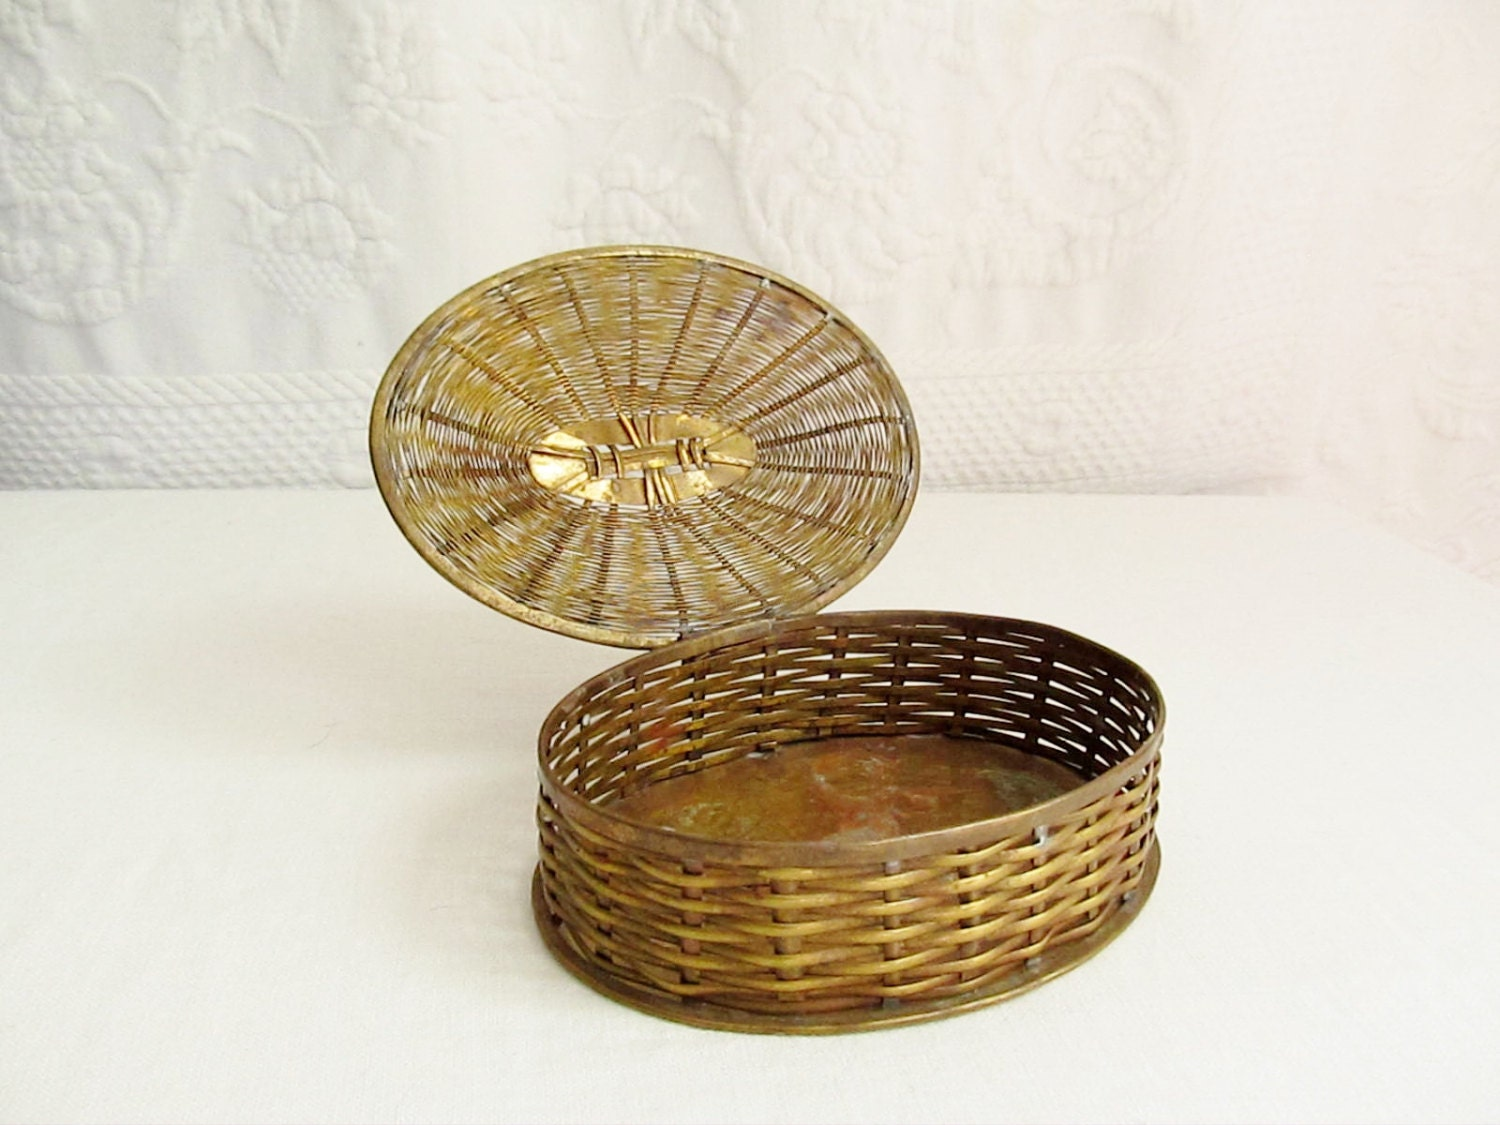 Woven Basket With Hinged Lid : Woven brass basket oval hinged lid treasure box